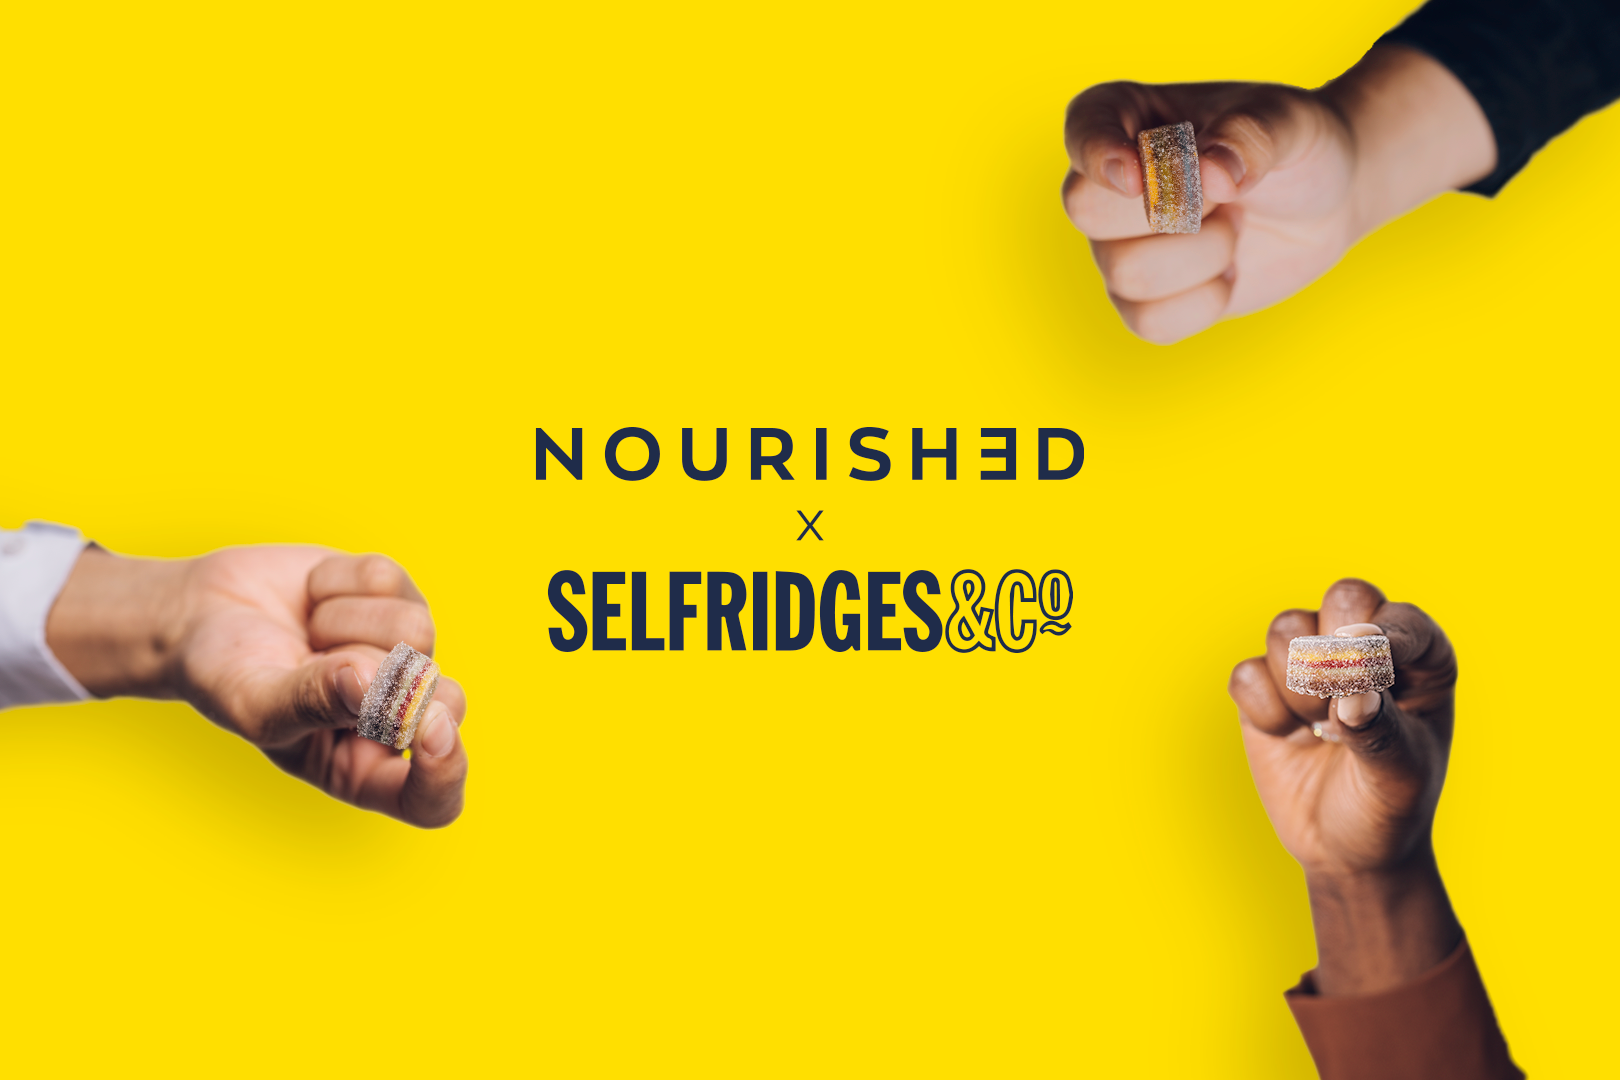 Nourished has exclusively launched in Selfridges